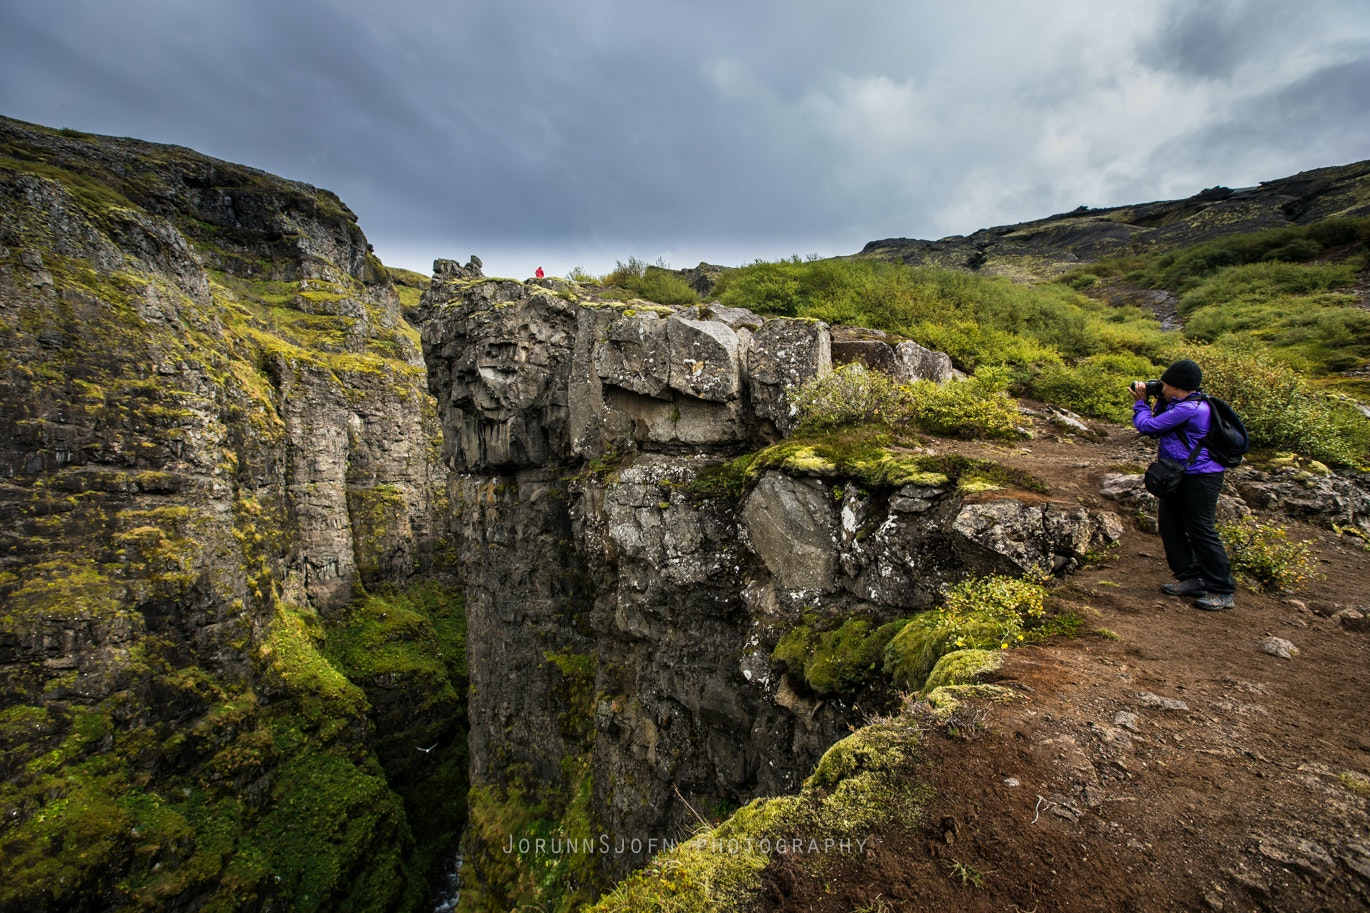 Hiking to Iceland's highest waterfall - Glymur